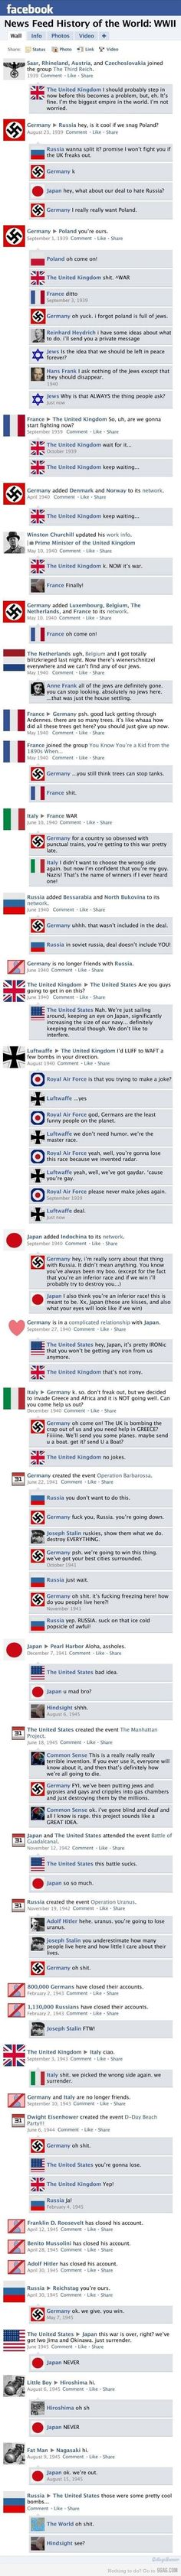 This is being posted on humor boards. WWII is now humorous. The loss of life was staggering and it's now a joke. I have a sense of humor. This is not funny to me. World History, World War Ii, Facebook Status, Facebook News, Facebook Style, Facebook Timeline, Funny Facebook, Facebook Drama, Fb News